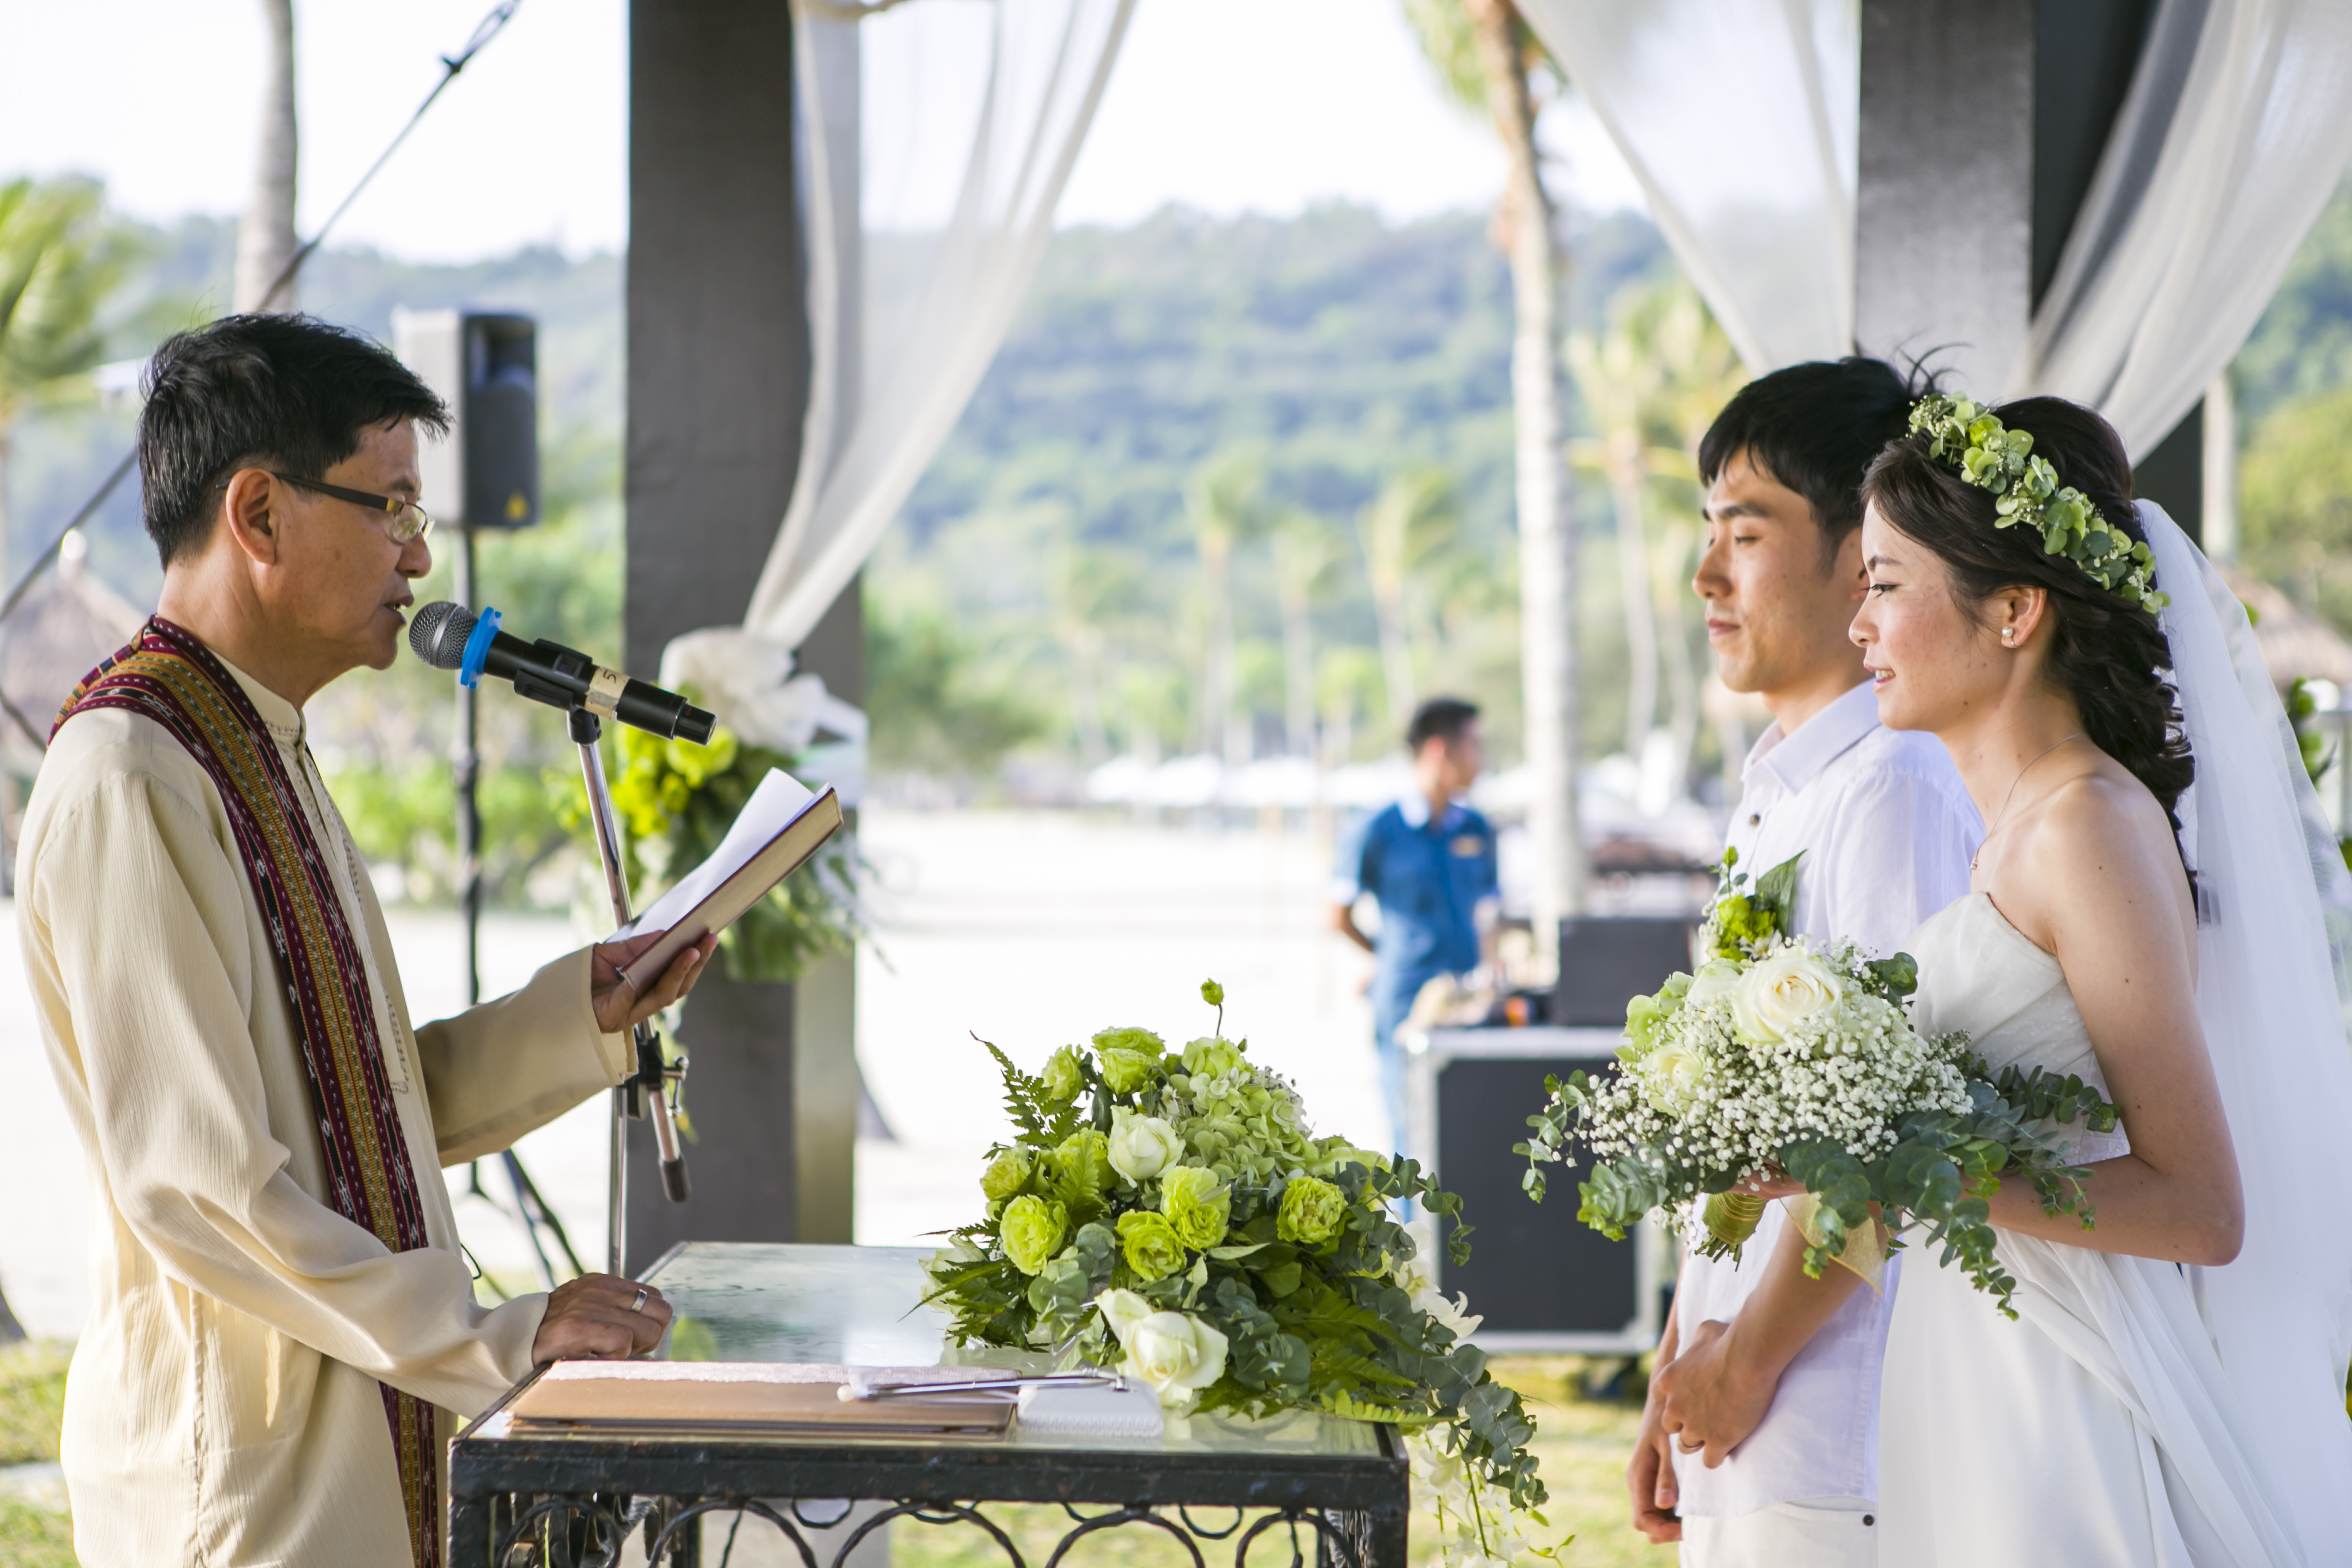 malaysiawedding, kotakinabalu,sabah, wedding, weddings, overseaswedding, syangri-La's rasaria resort, pavilionwedding, japanesewedding